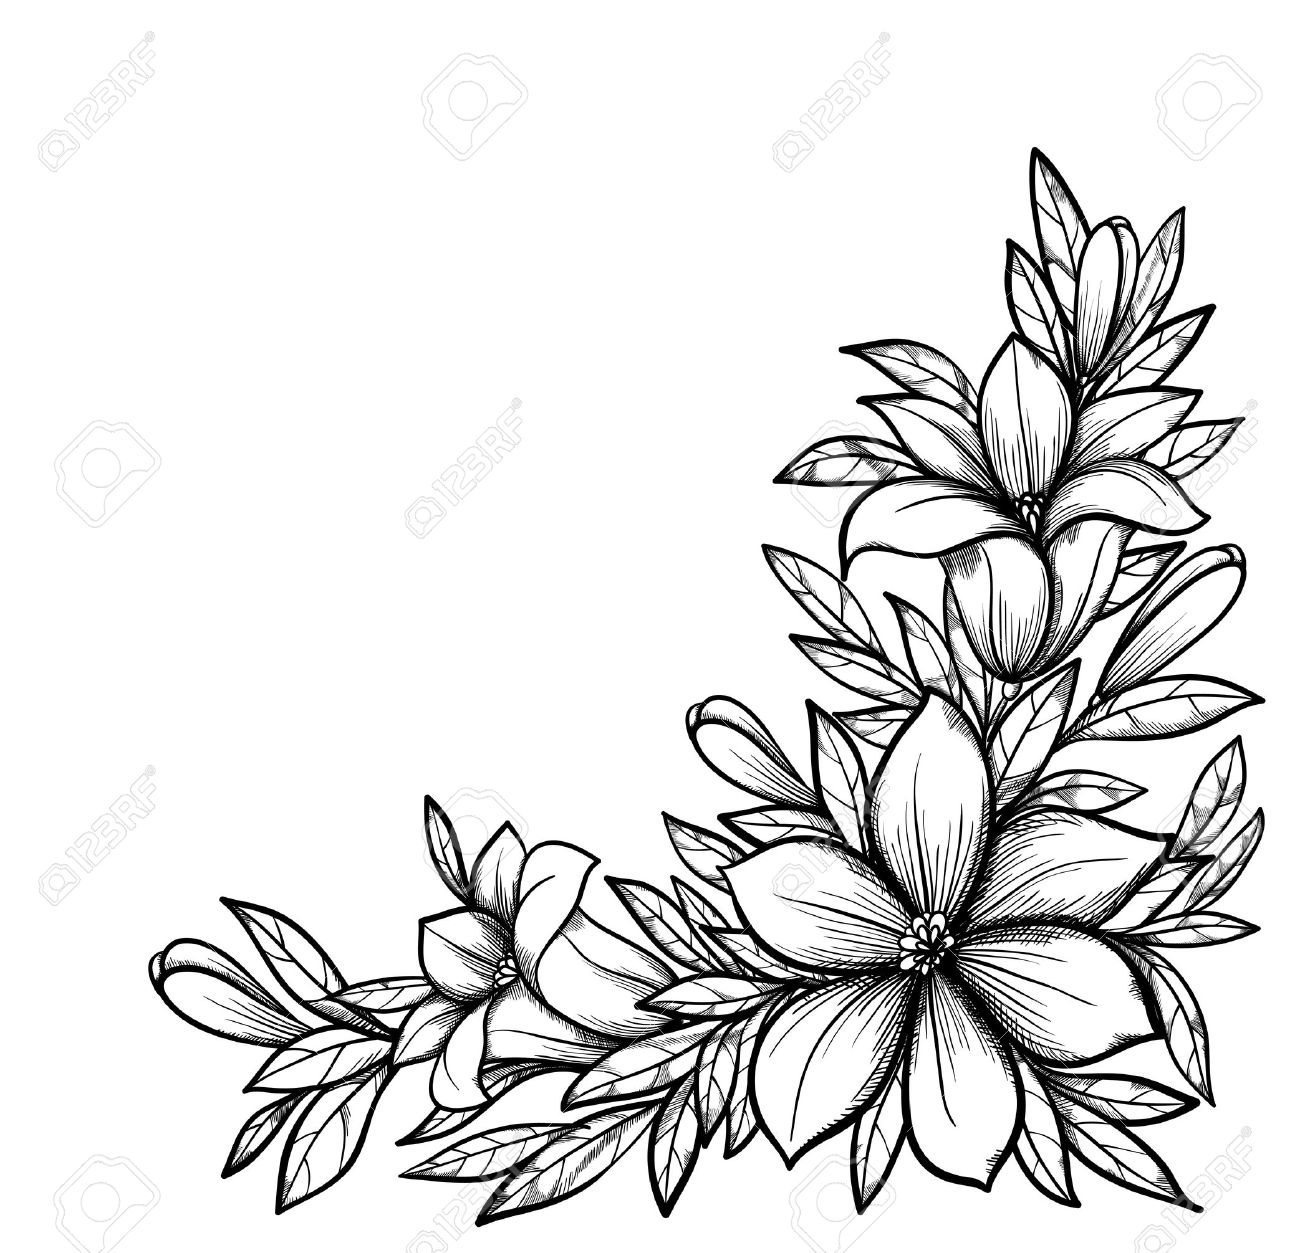 Black And White Flower Drawing At Getdrawings Free For